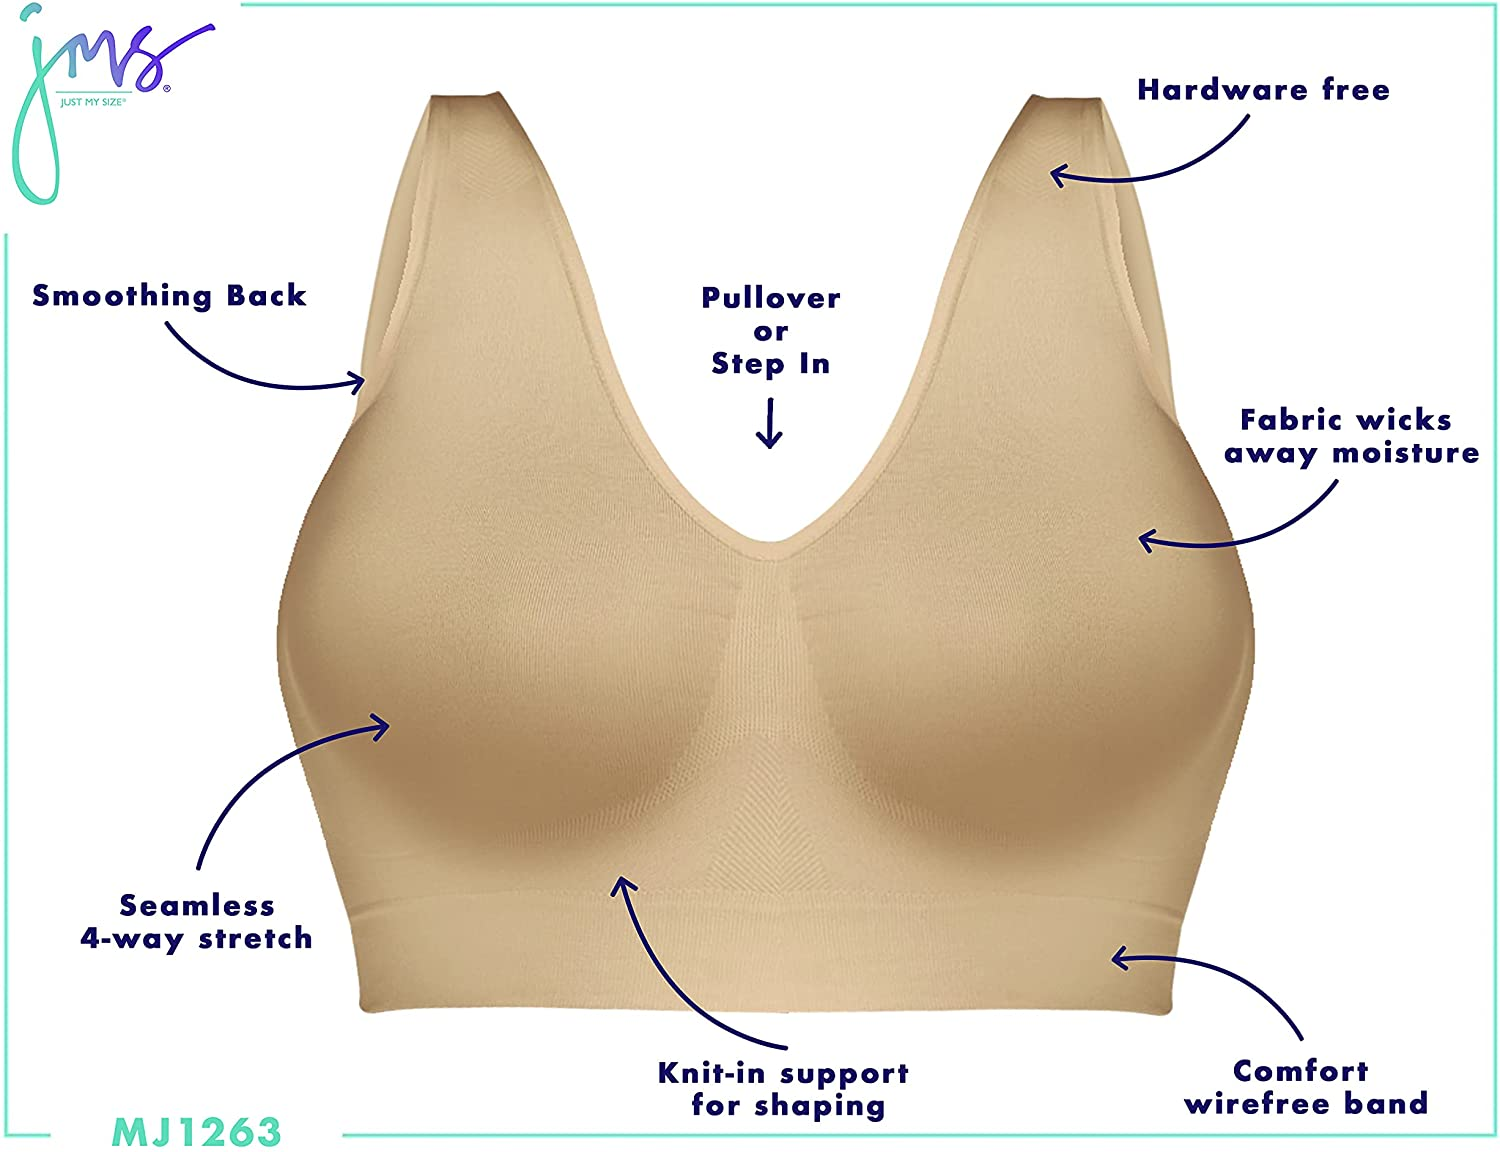 JUST MY SIZE Pure Comfort Seamless Wirefree Bra with Moisture Control (1263)